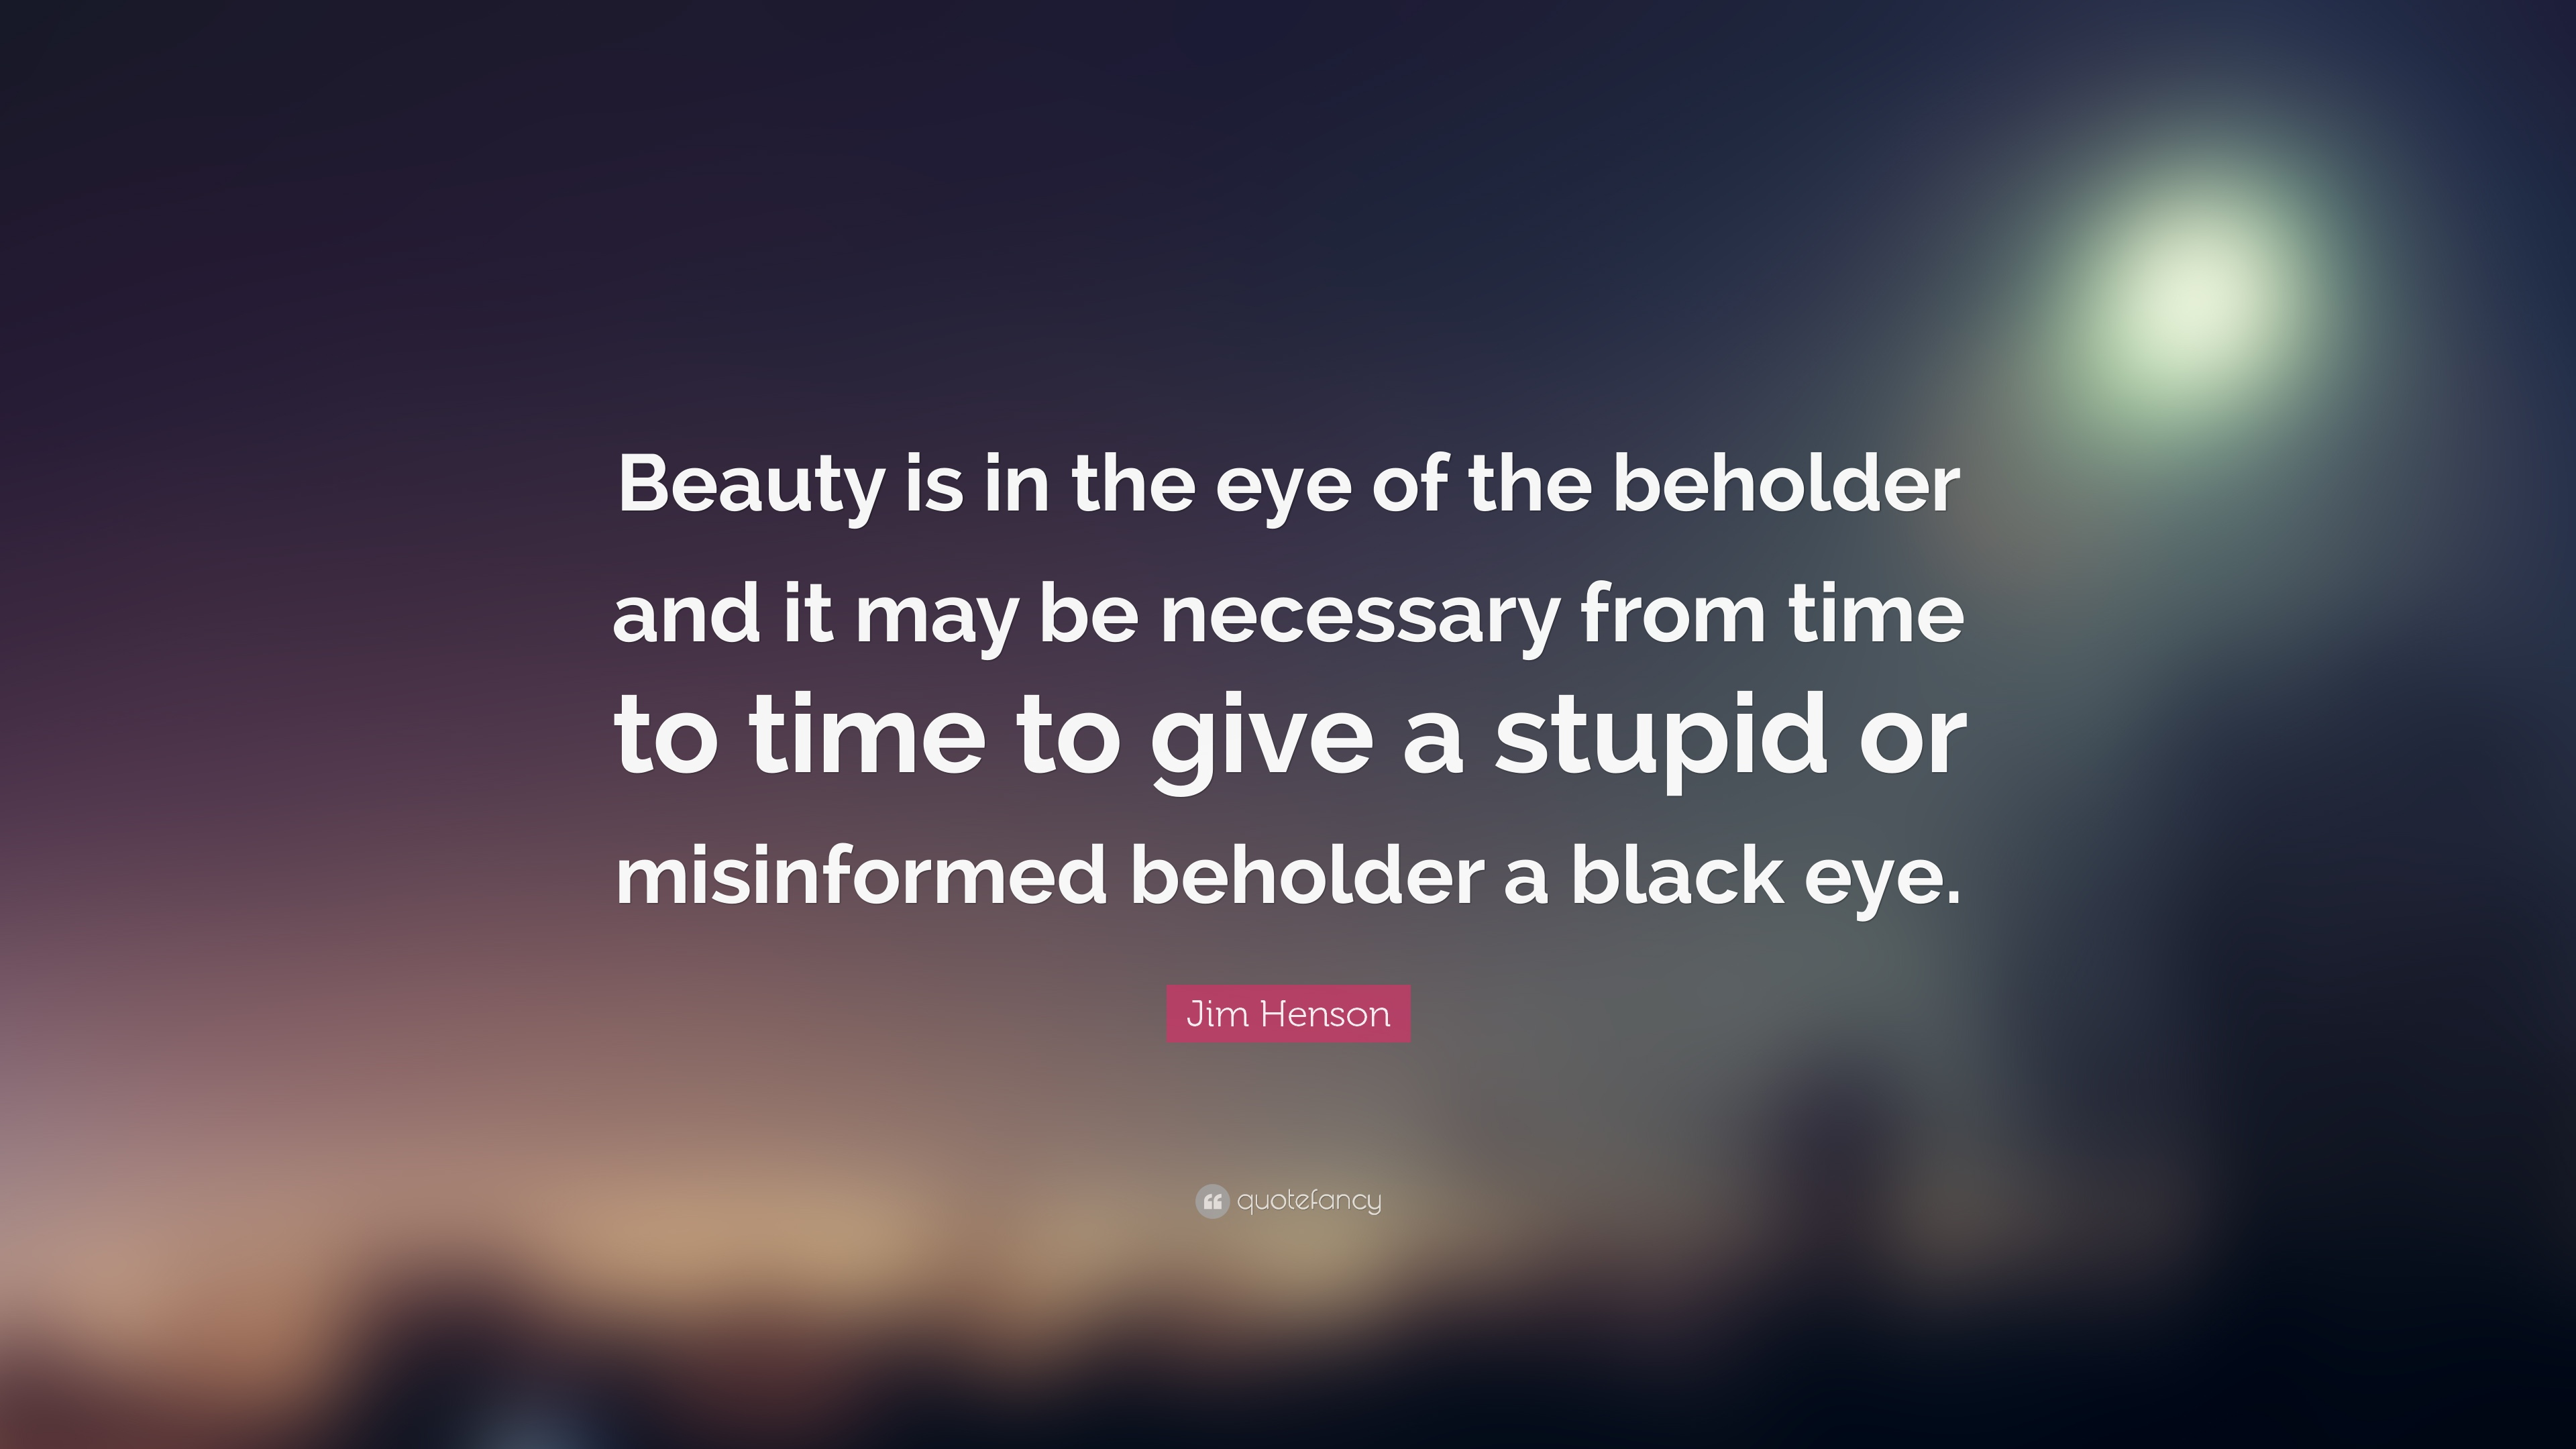 Beauty is in the eye of the beholder - Idioms by The Free ...